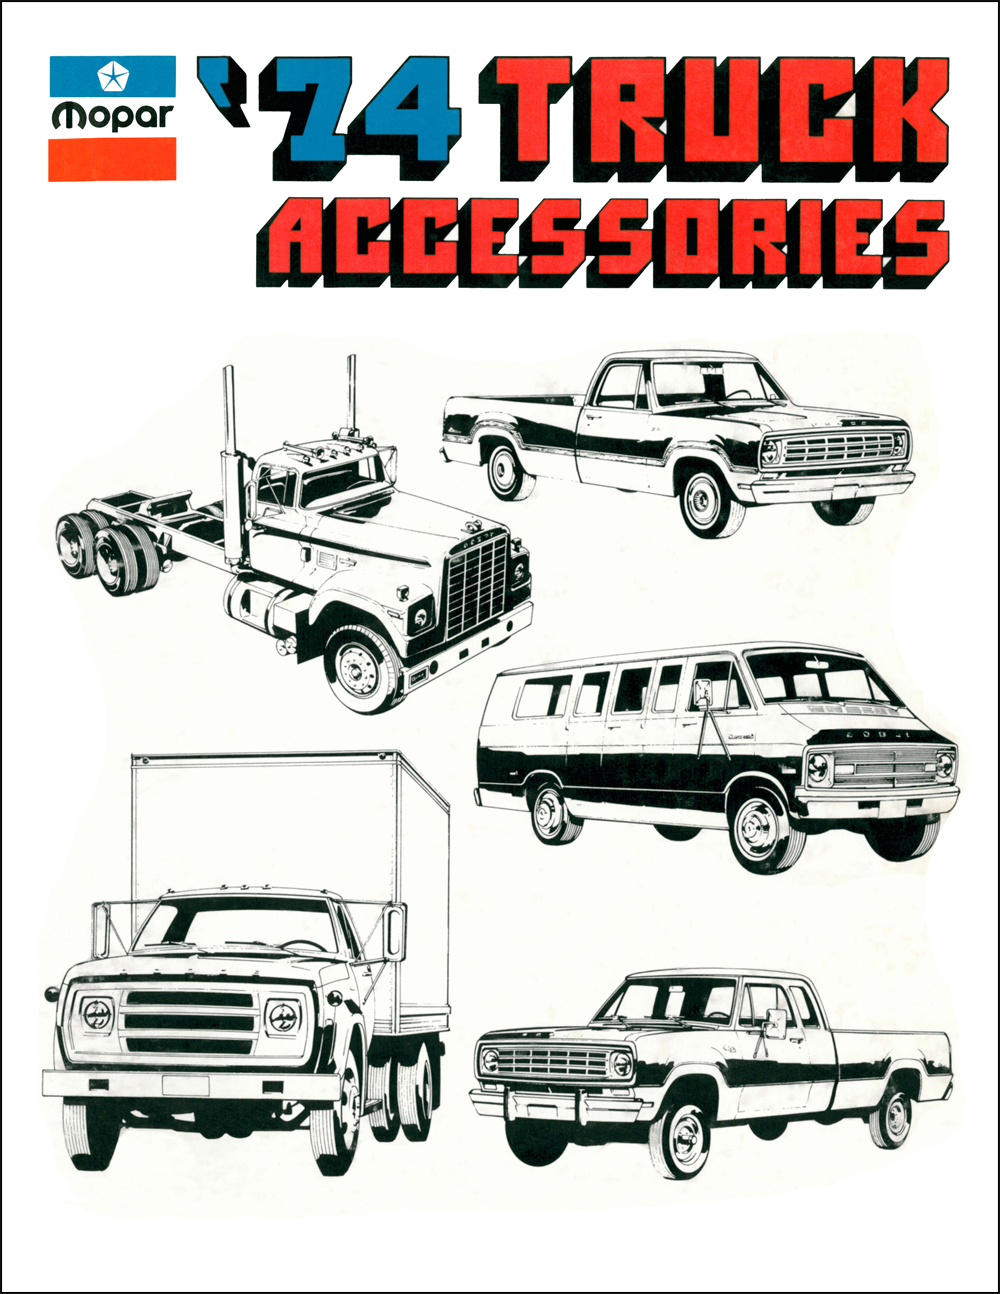 1974 Dodge Truck Accessories Parts Book Reprint